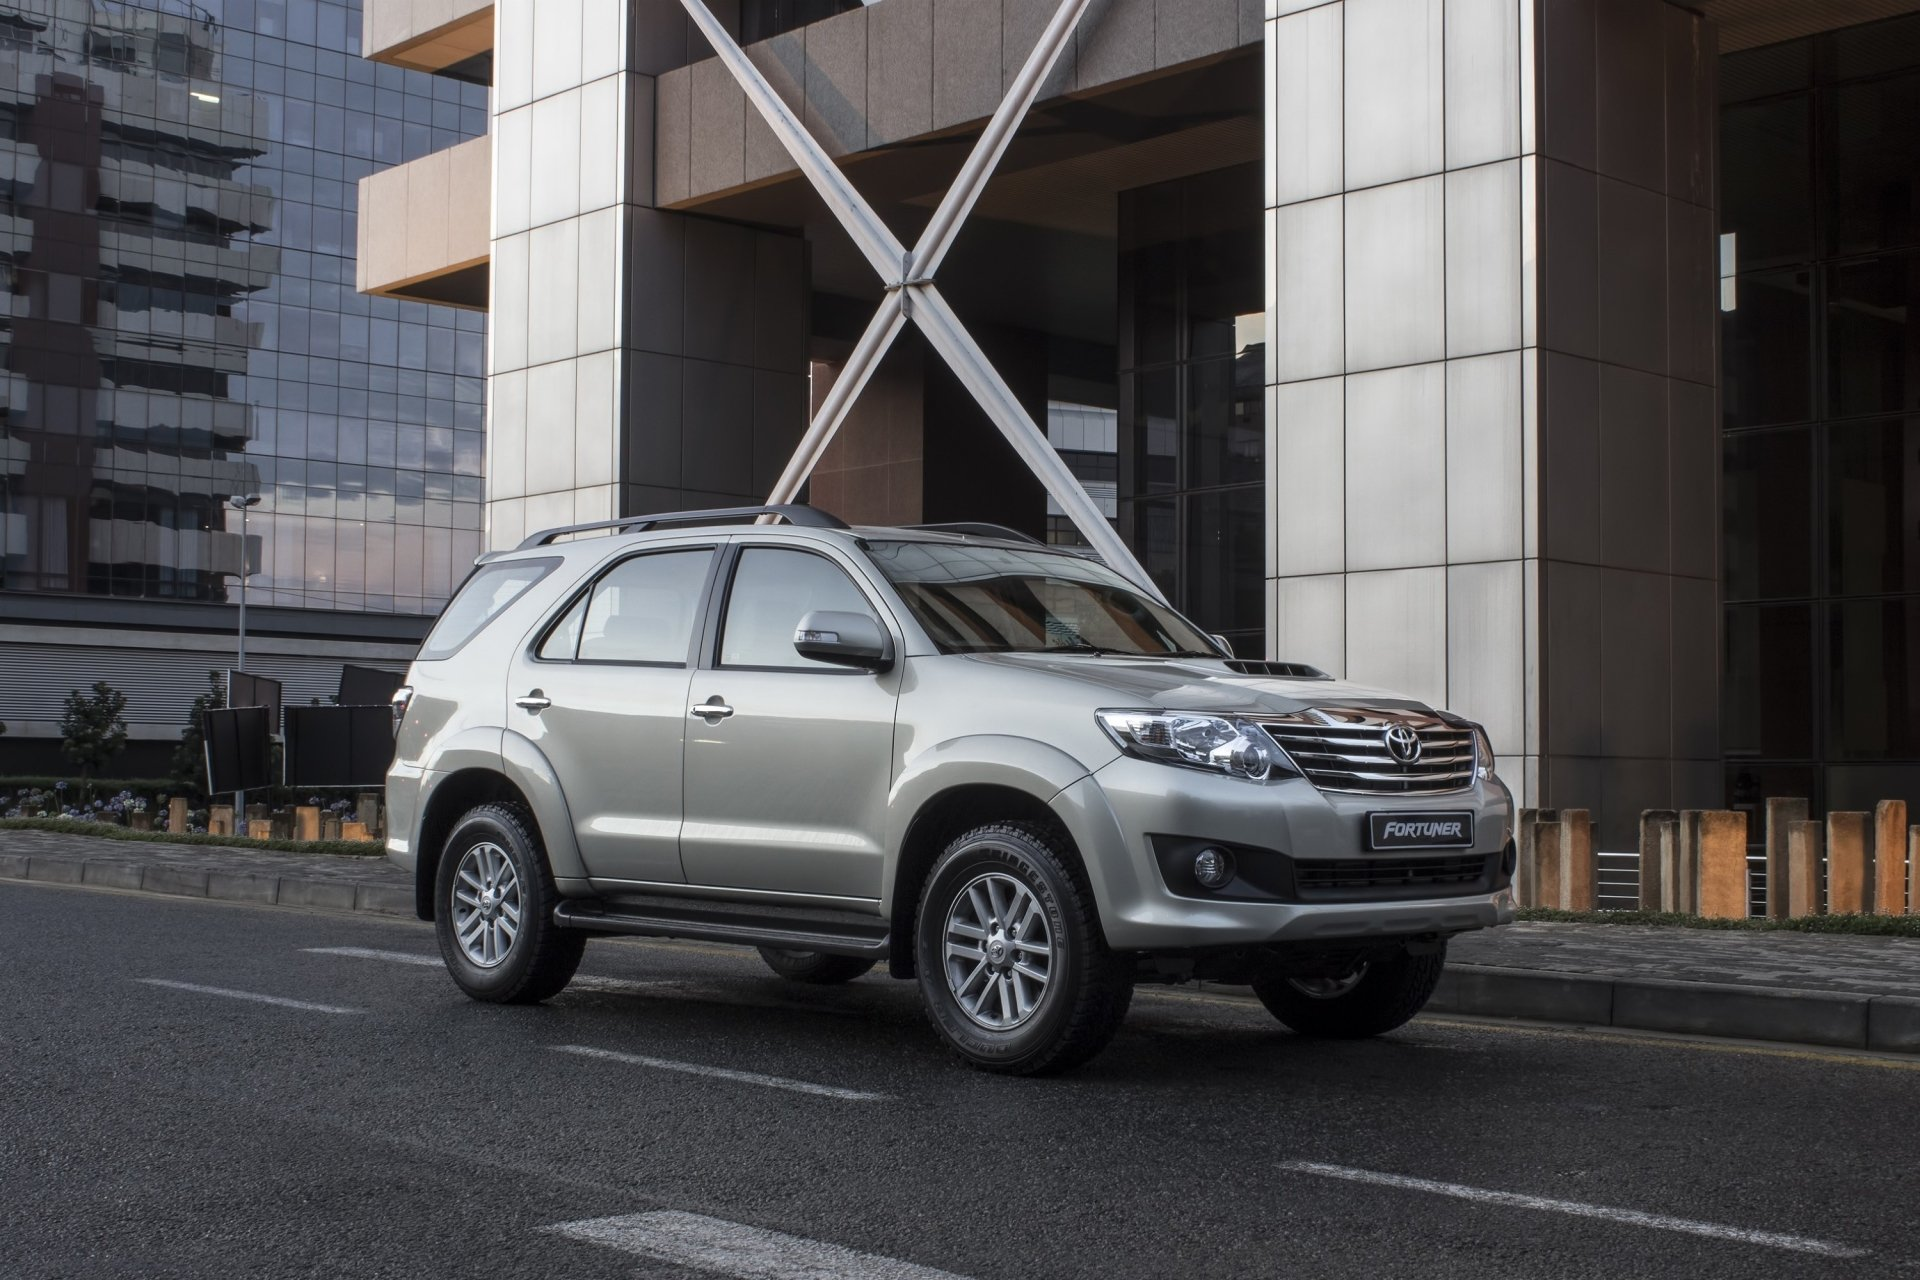 Toyota Fortuner HD Wallpaper | Background Image ...